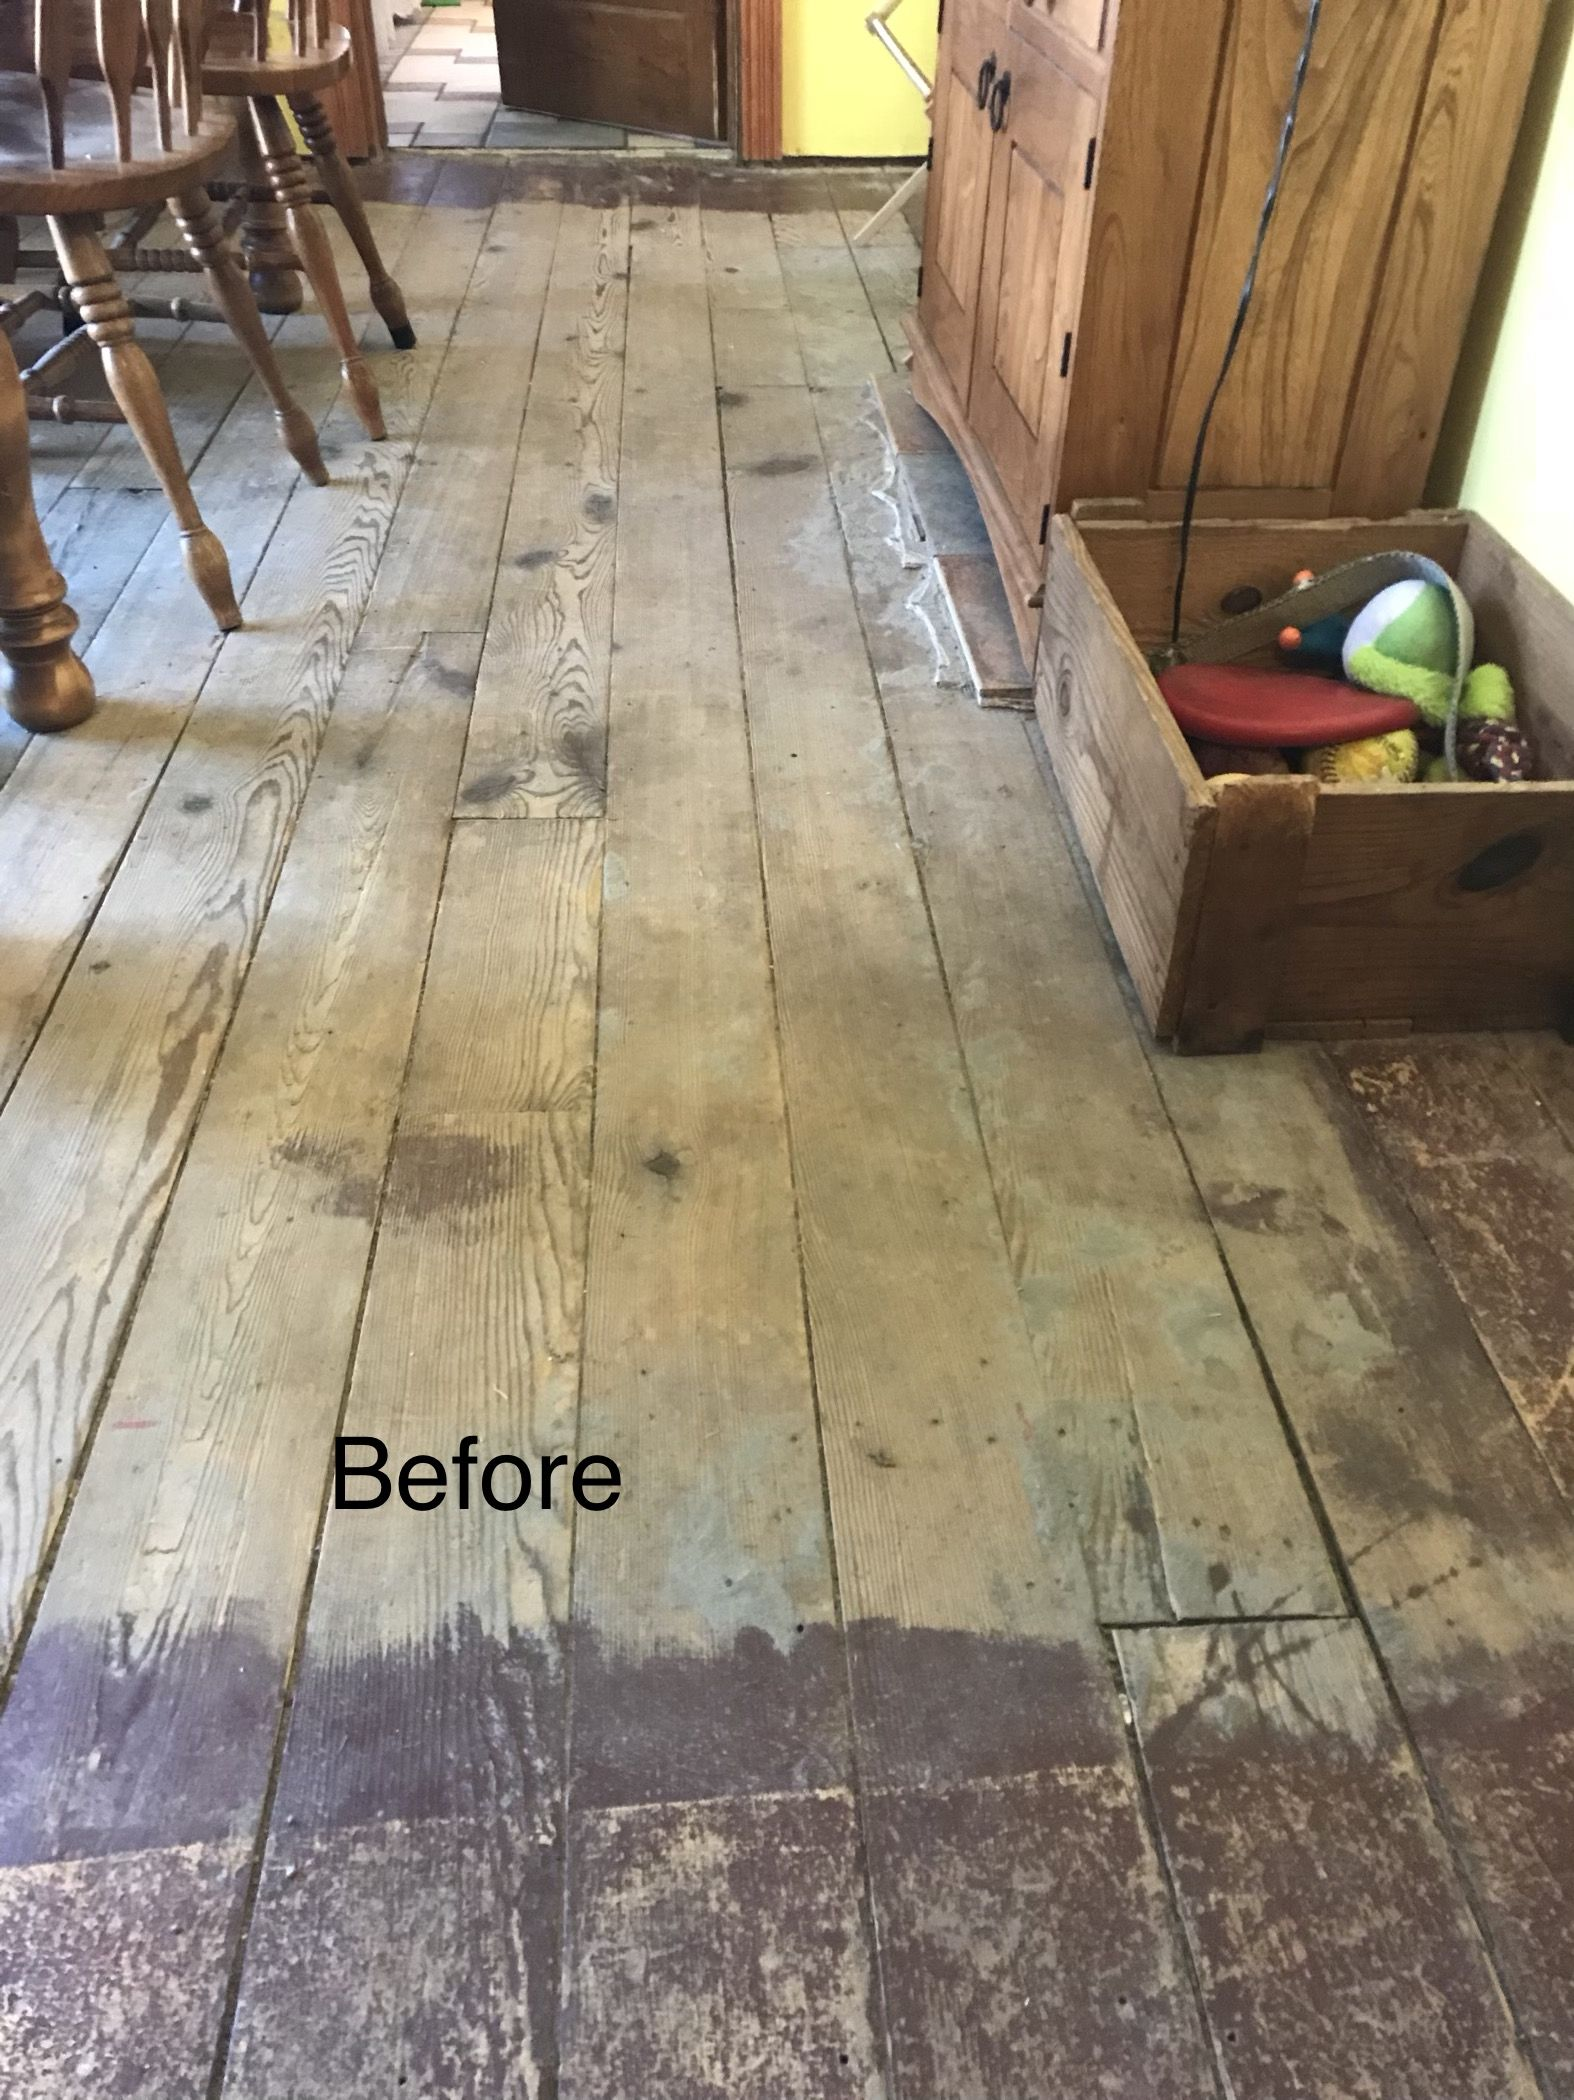 Downstairs During The Process Of Removing Old Tile Cement Board